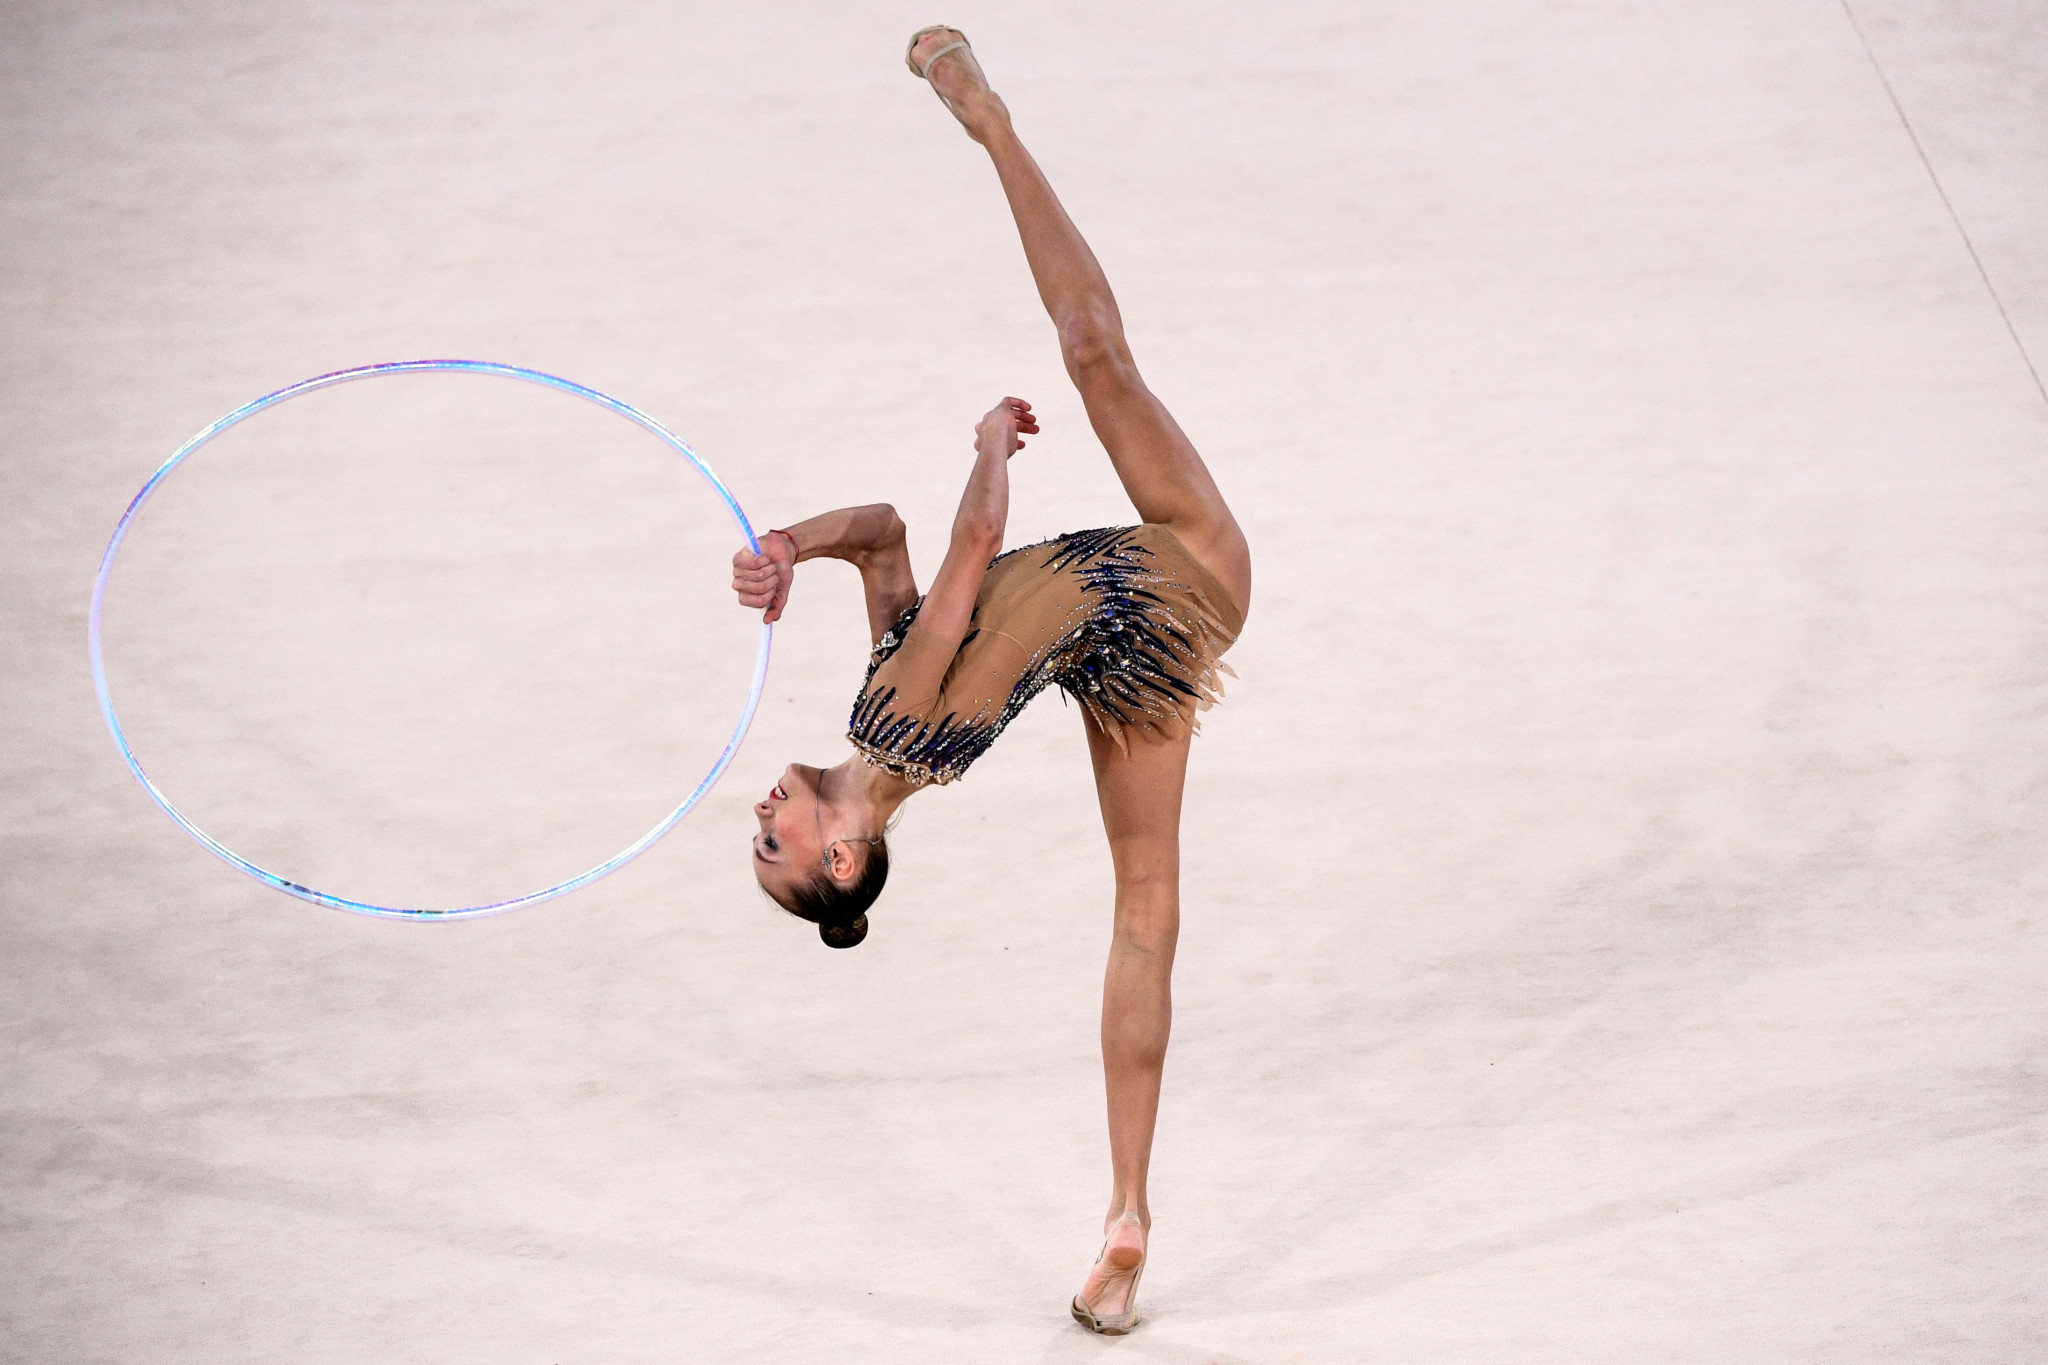 Russia will not attend the European Rhythmic Gymnastics Championships in November ©Getty Images